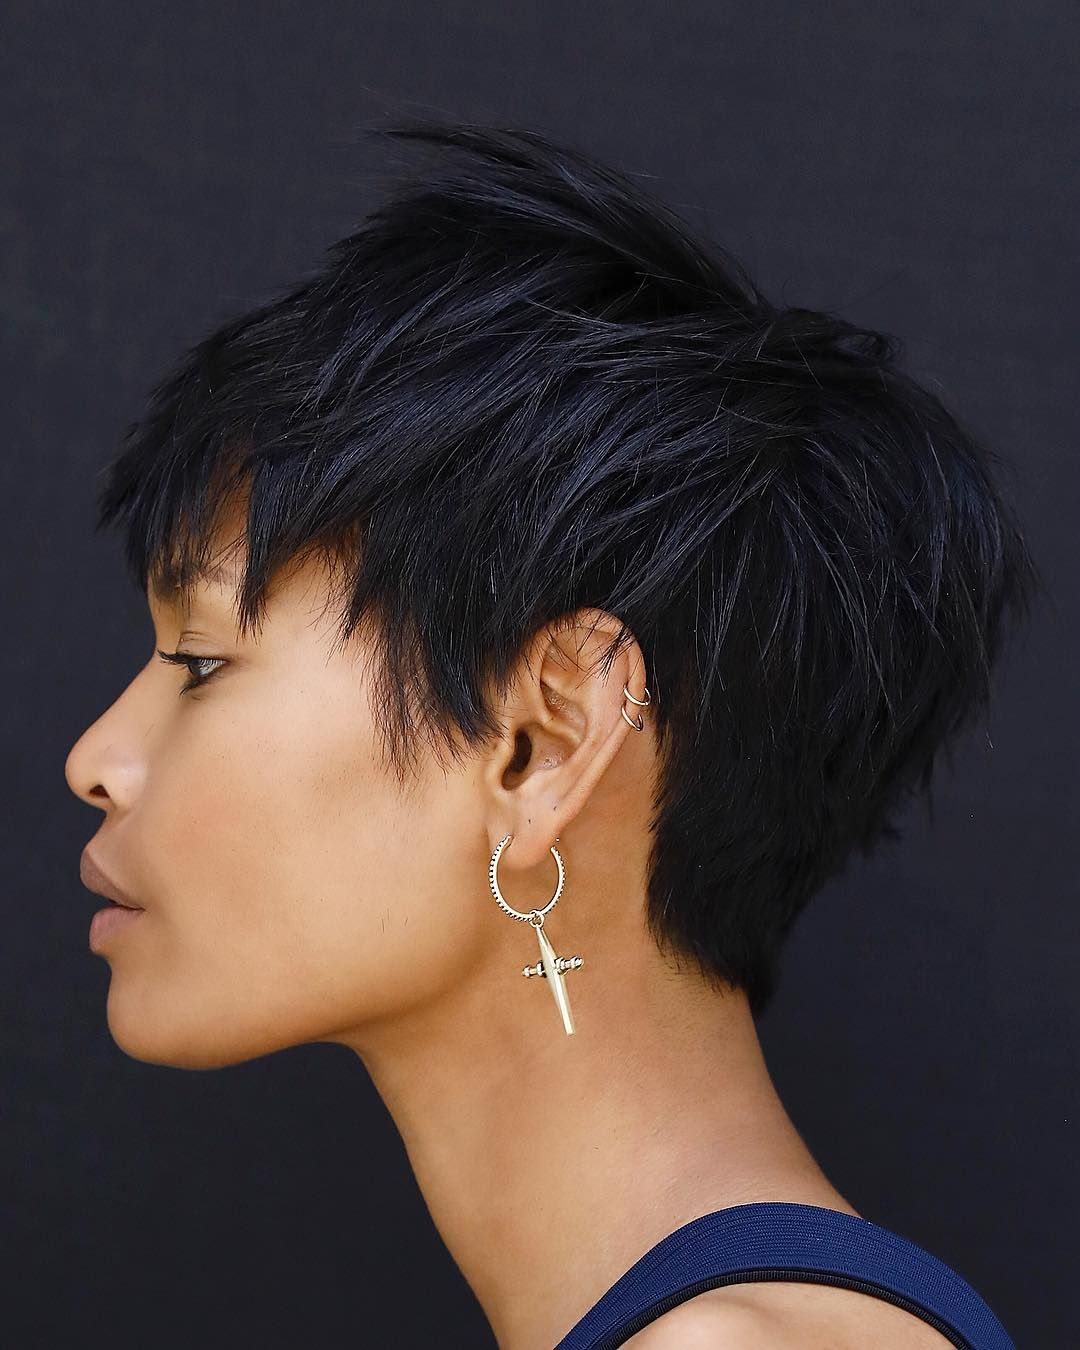 Pin by Lynnie on pixie perfection  Pinterest  Pixies Short hair